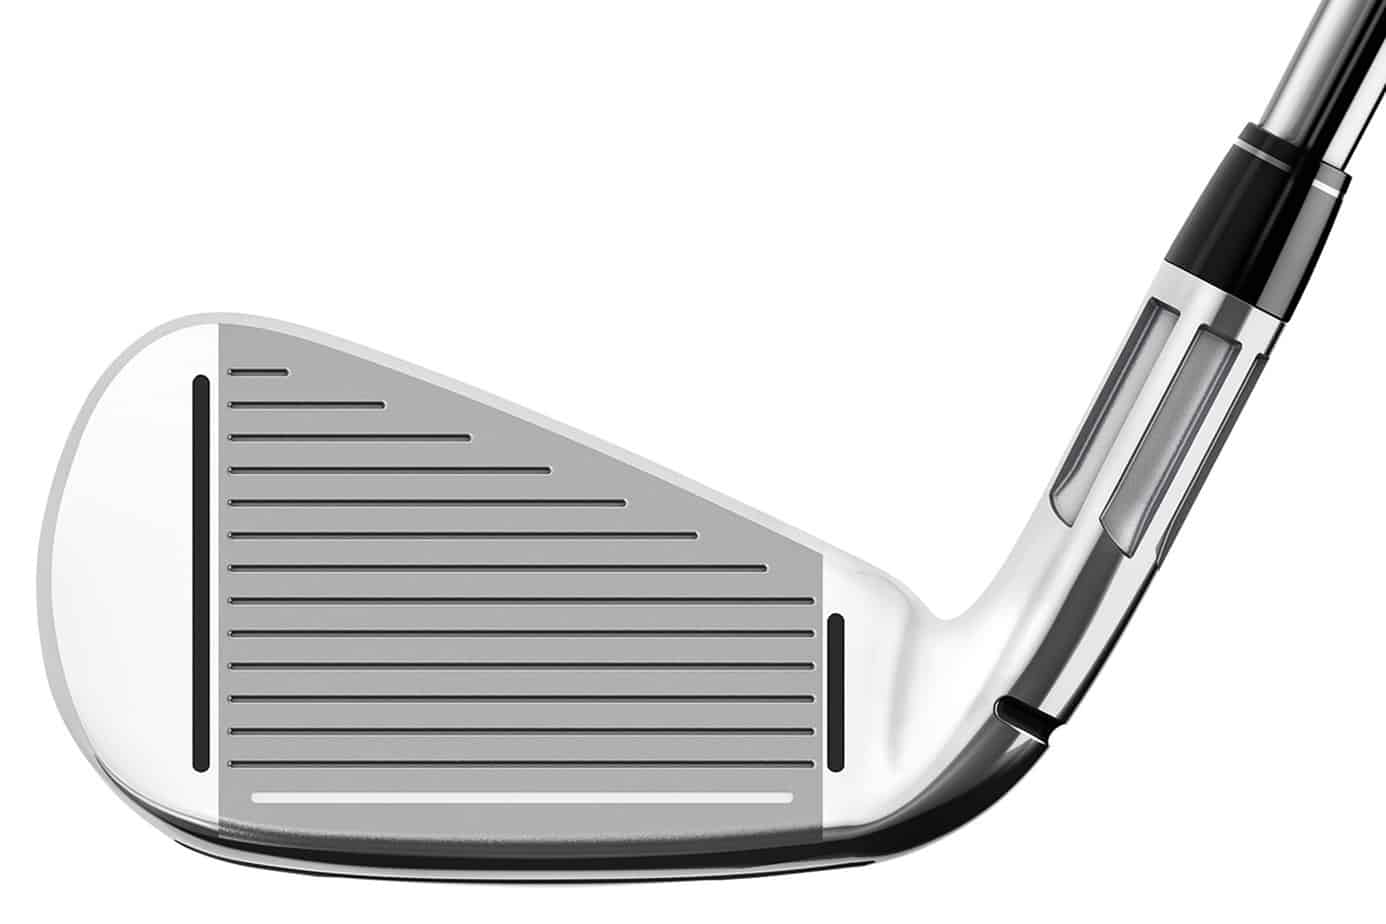 Image of the fluted hosel of the Taylormade M2 iron.